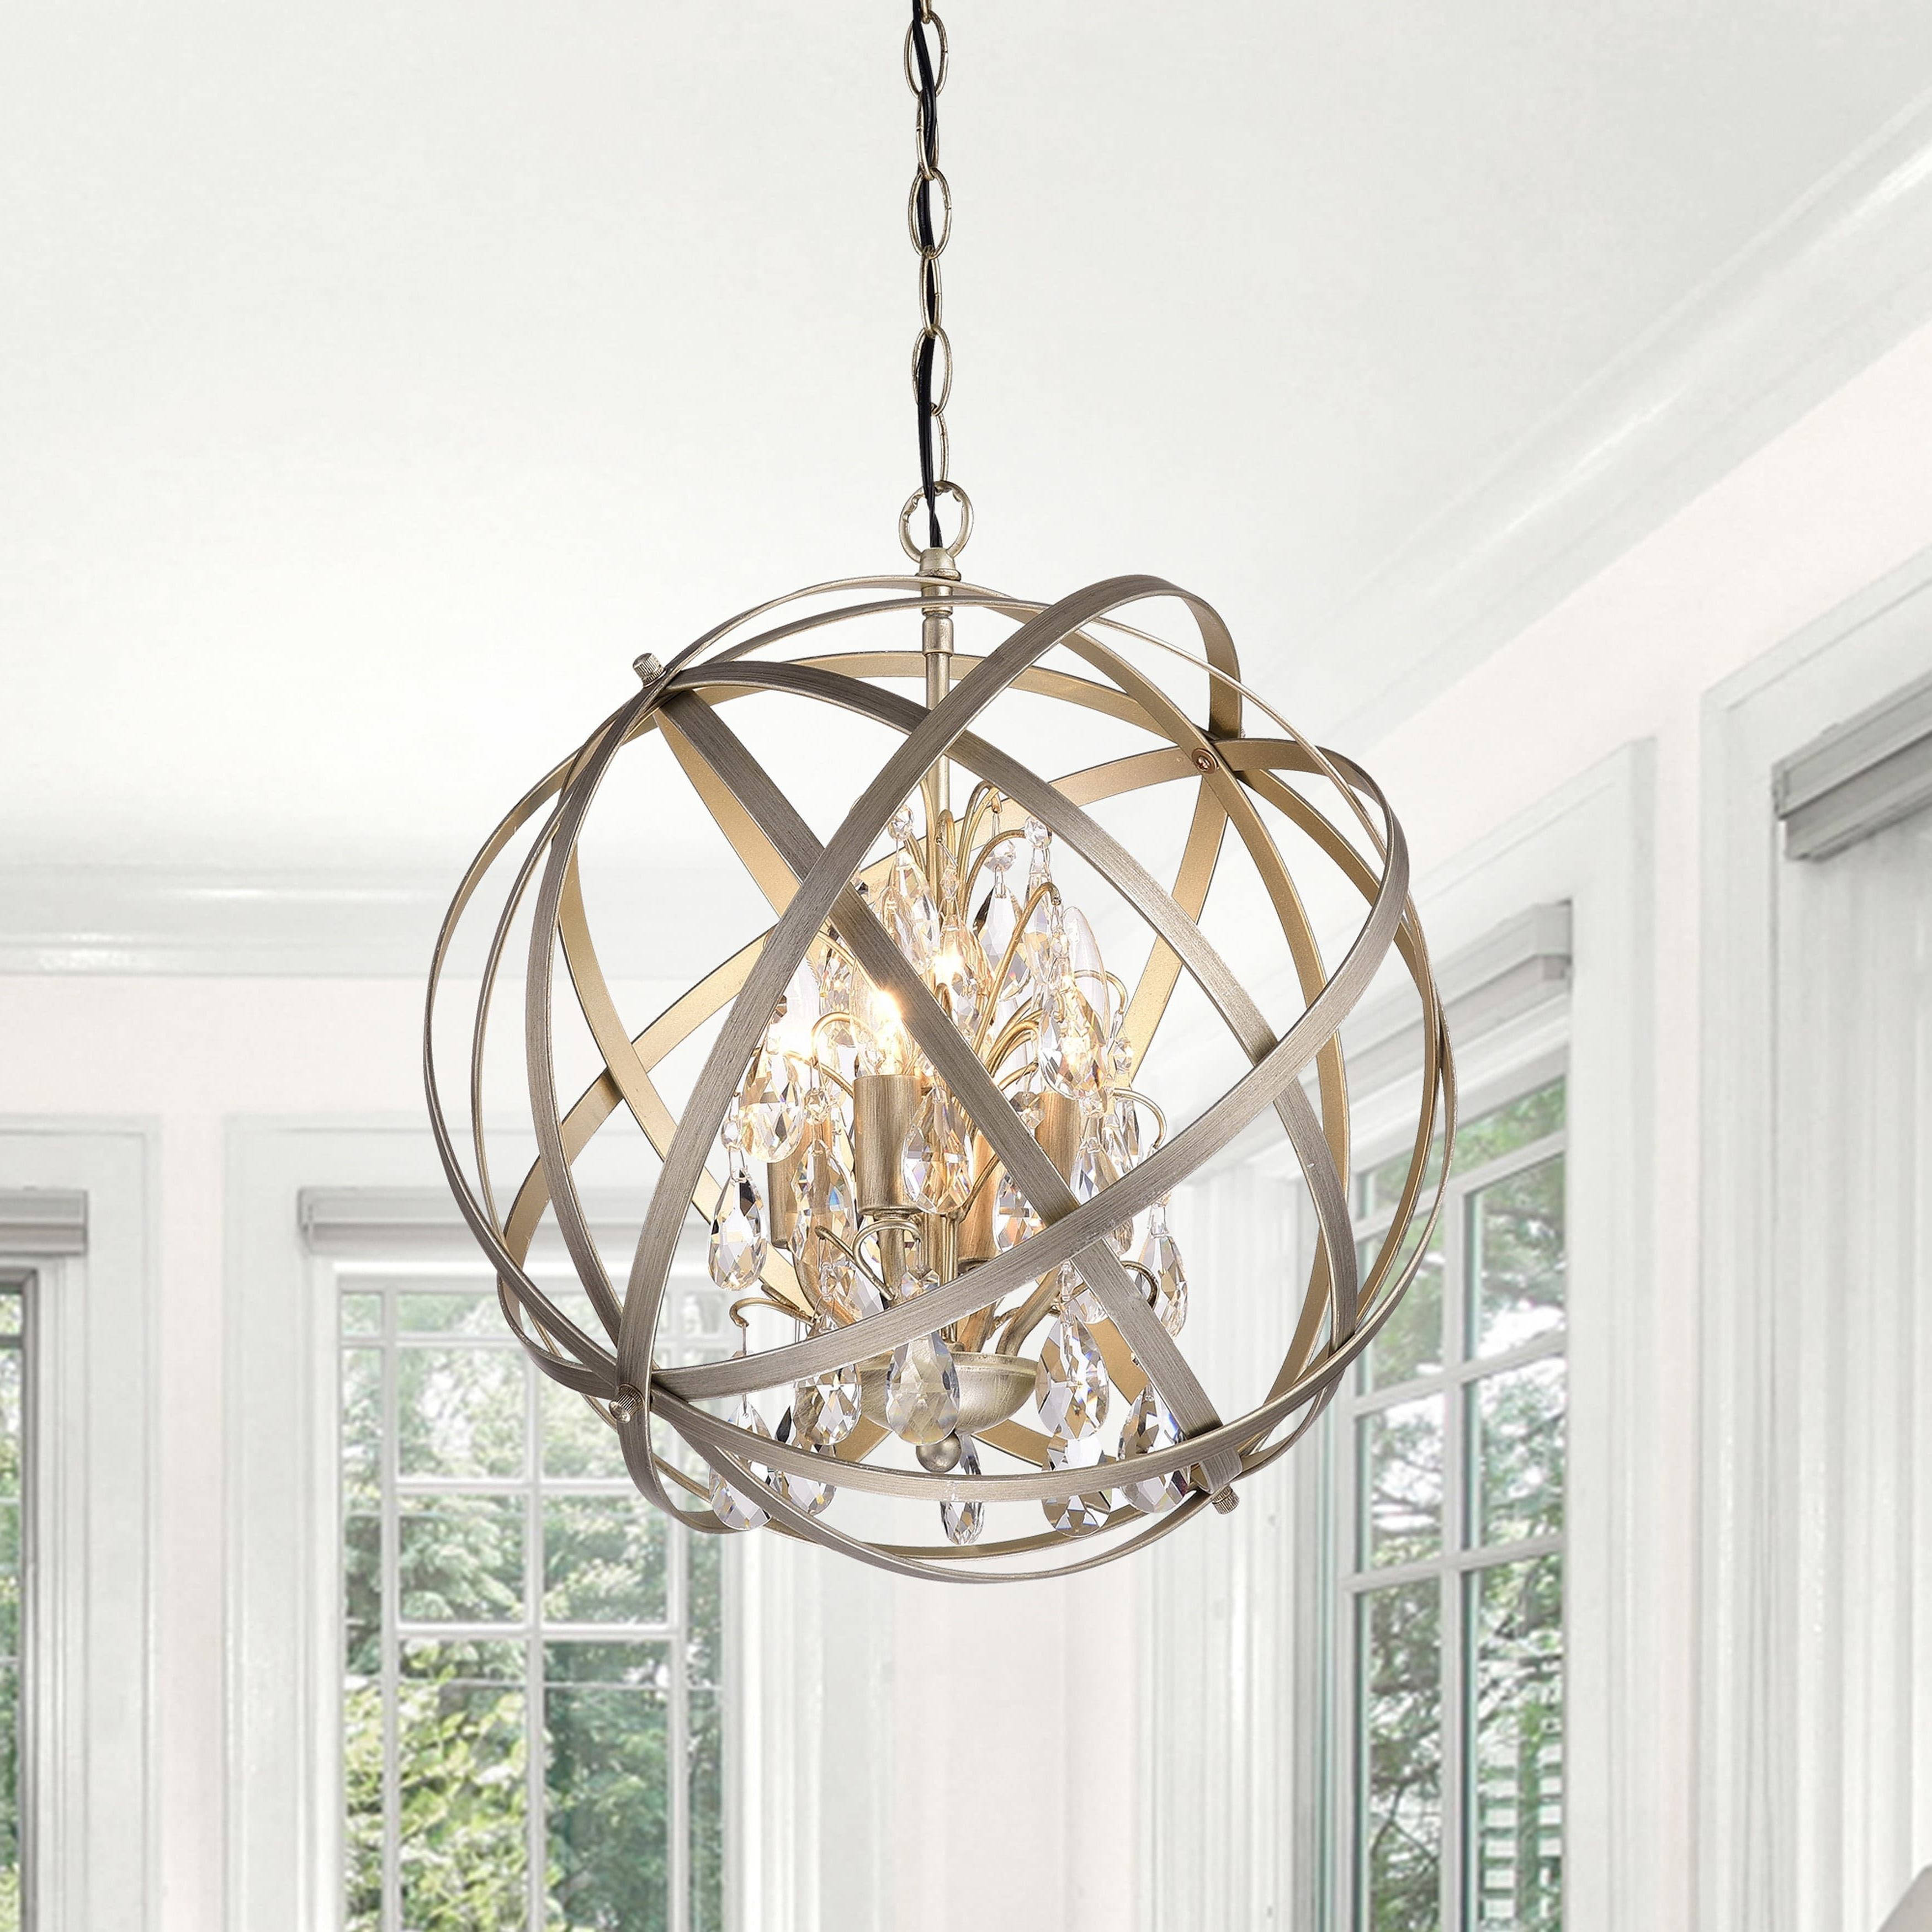 Benita Antique Copper 3 Light Metal Globe Crystal Chandelier For Preferred Globe Crystal Chandelier (View 1 of 20)